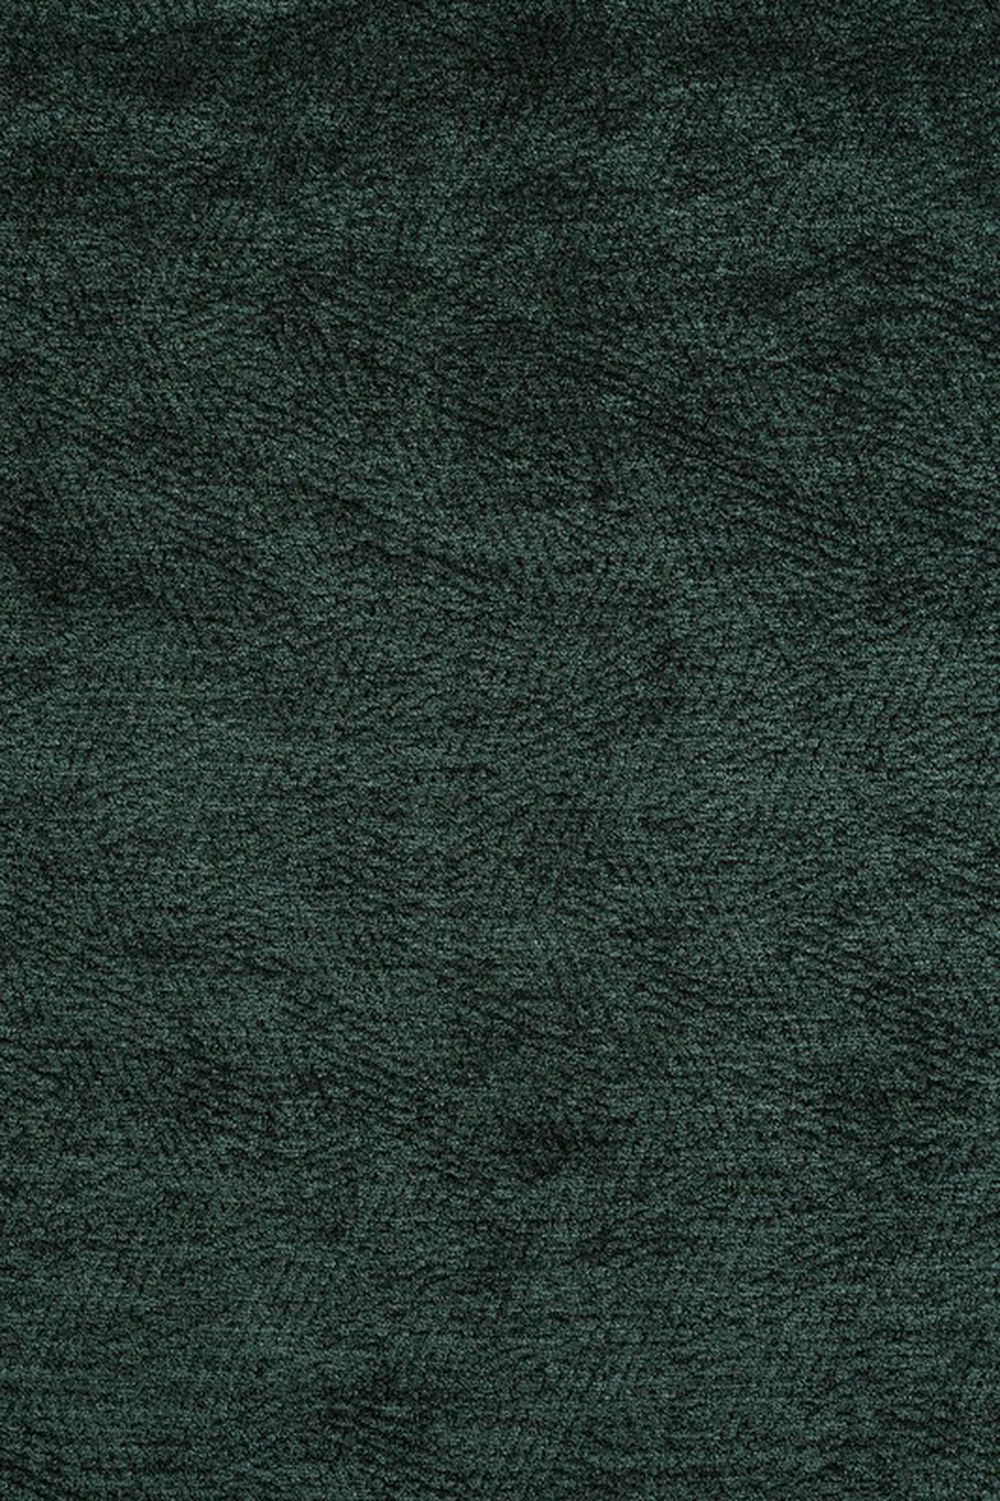 Photo of the fabric Contexture Jade swatch by James Dunlop. Use for Upholstery Heavy Duty, Accessory. Style of Geometric, Plain, Texture